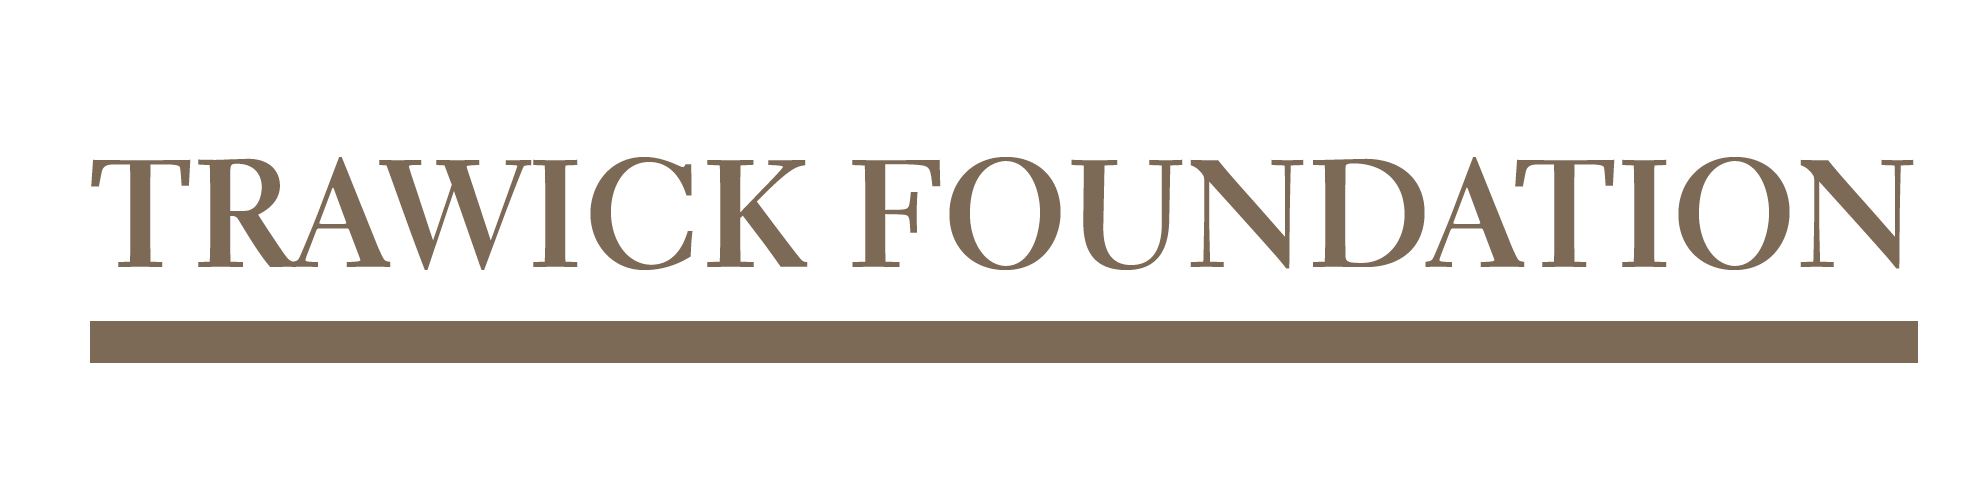 Trawick Foundation